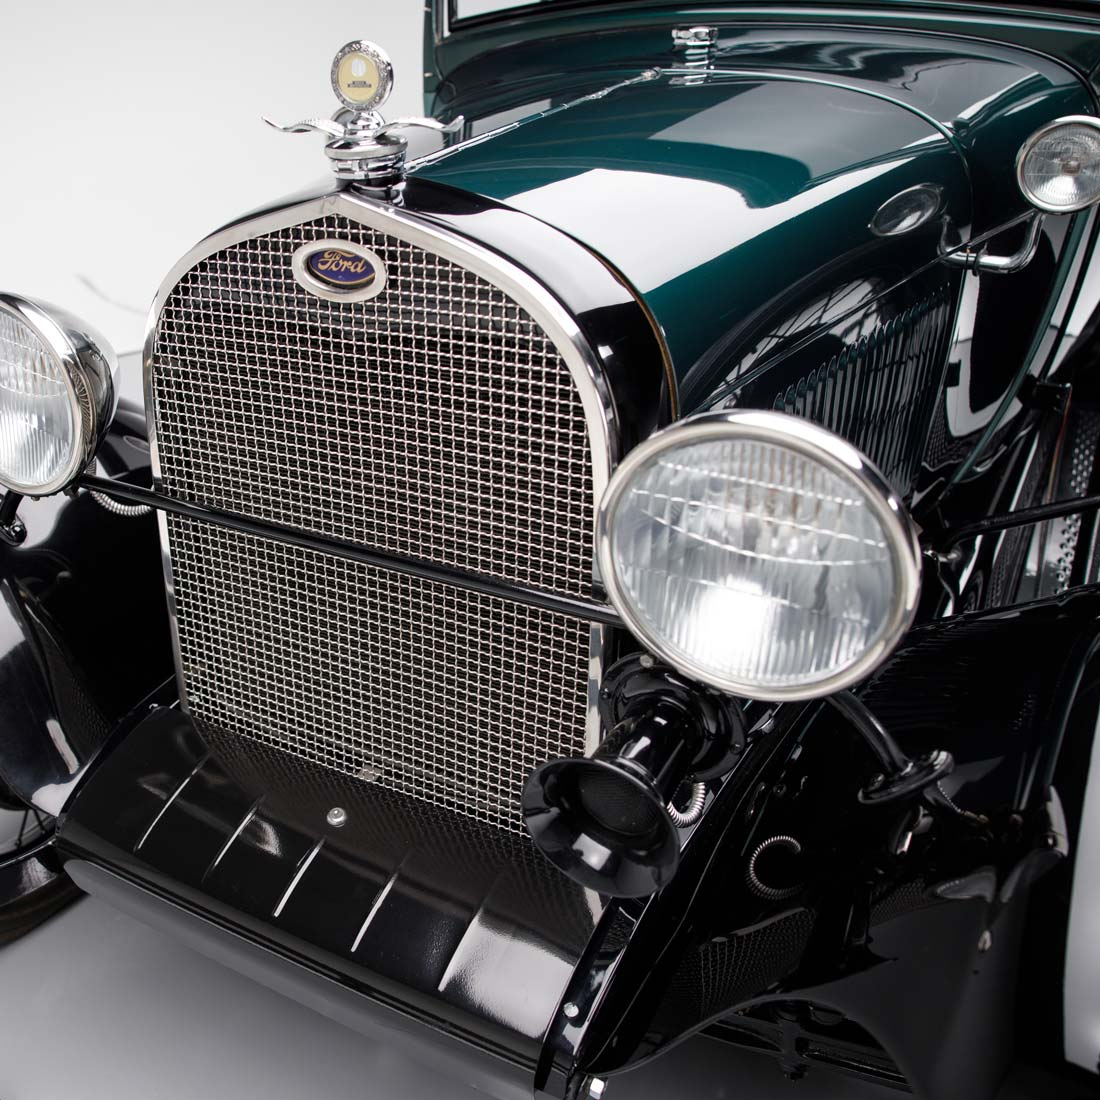 1928 Ford Model A Pickup Roadster - The JBS Collection